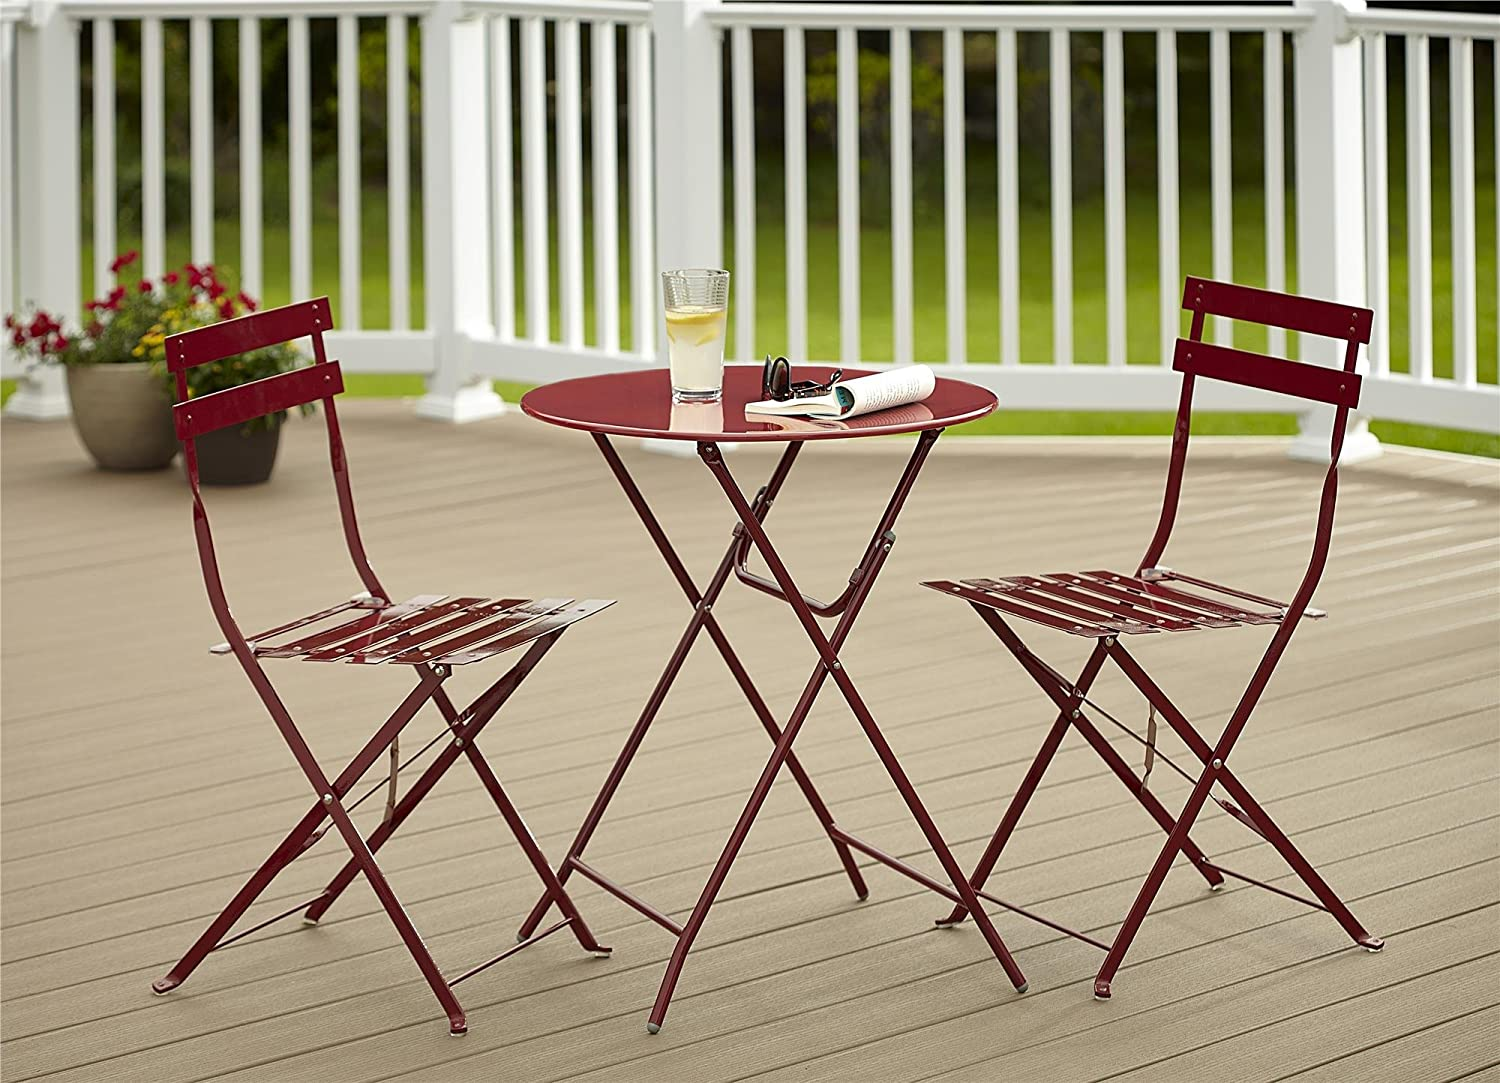 amazoncom cosco 3 piece folding bistro style patio table and chairs set red kitchen dining